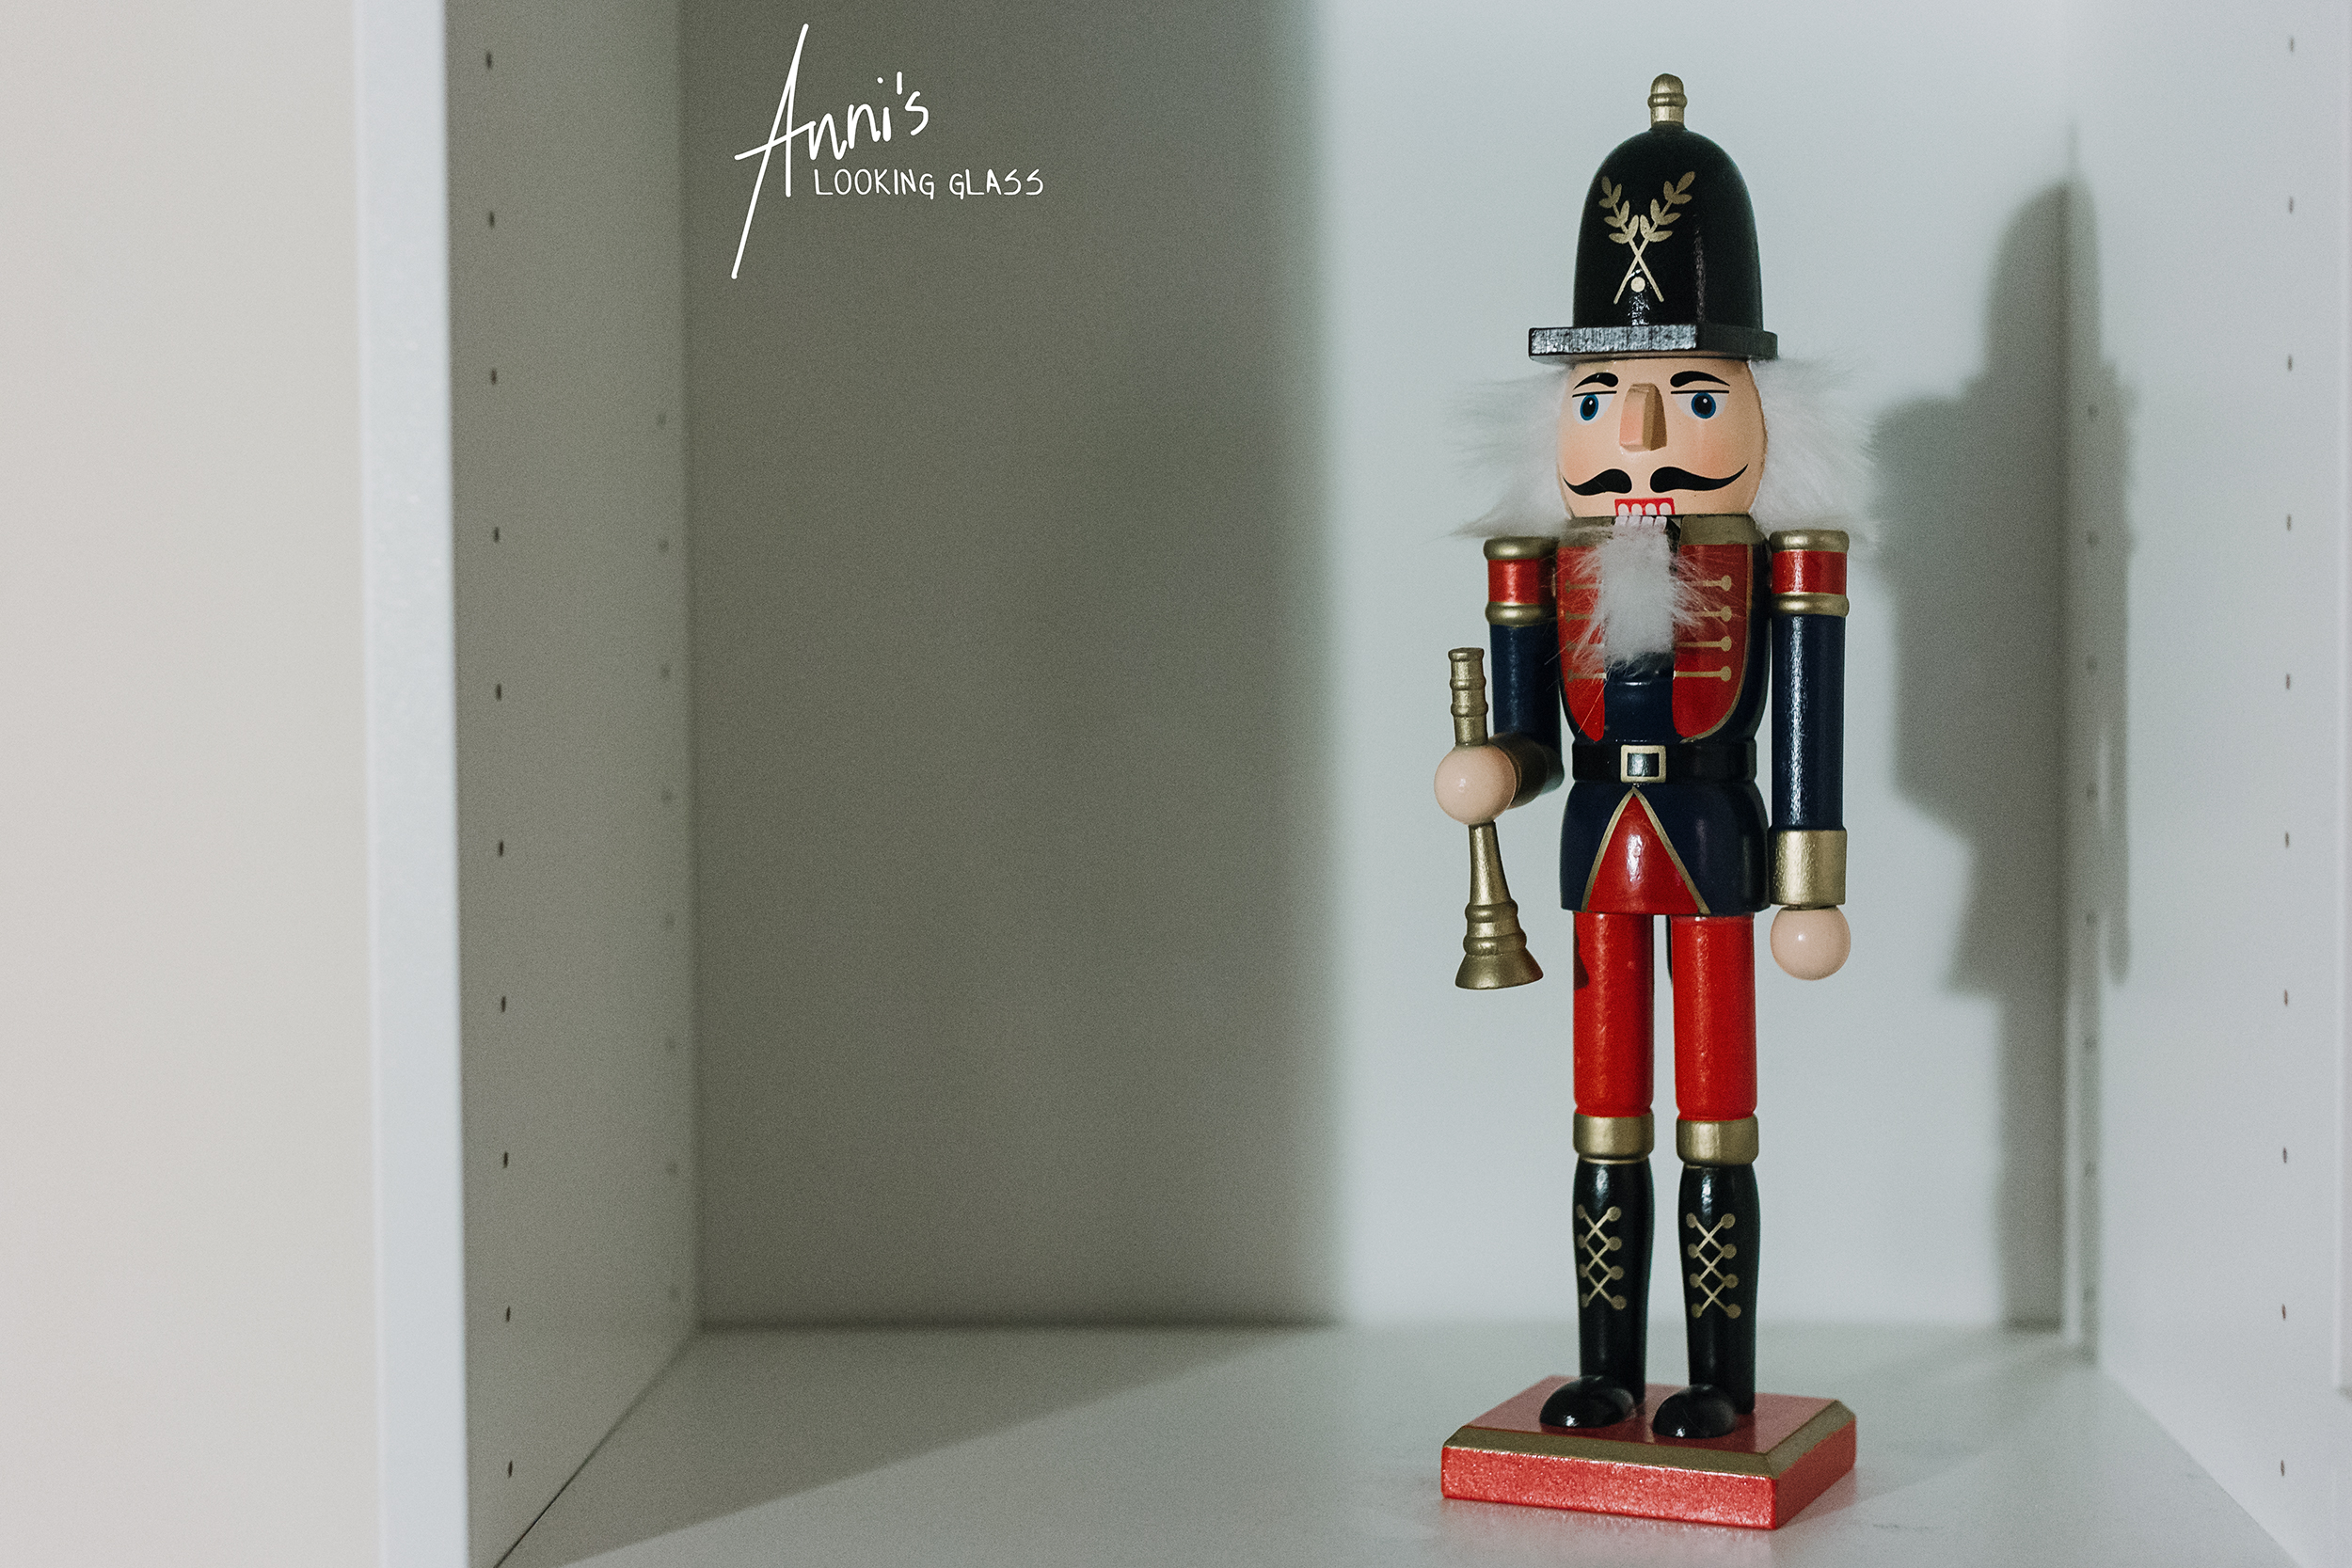 A red and blue nutcracker sitting in a white shelf